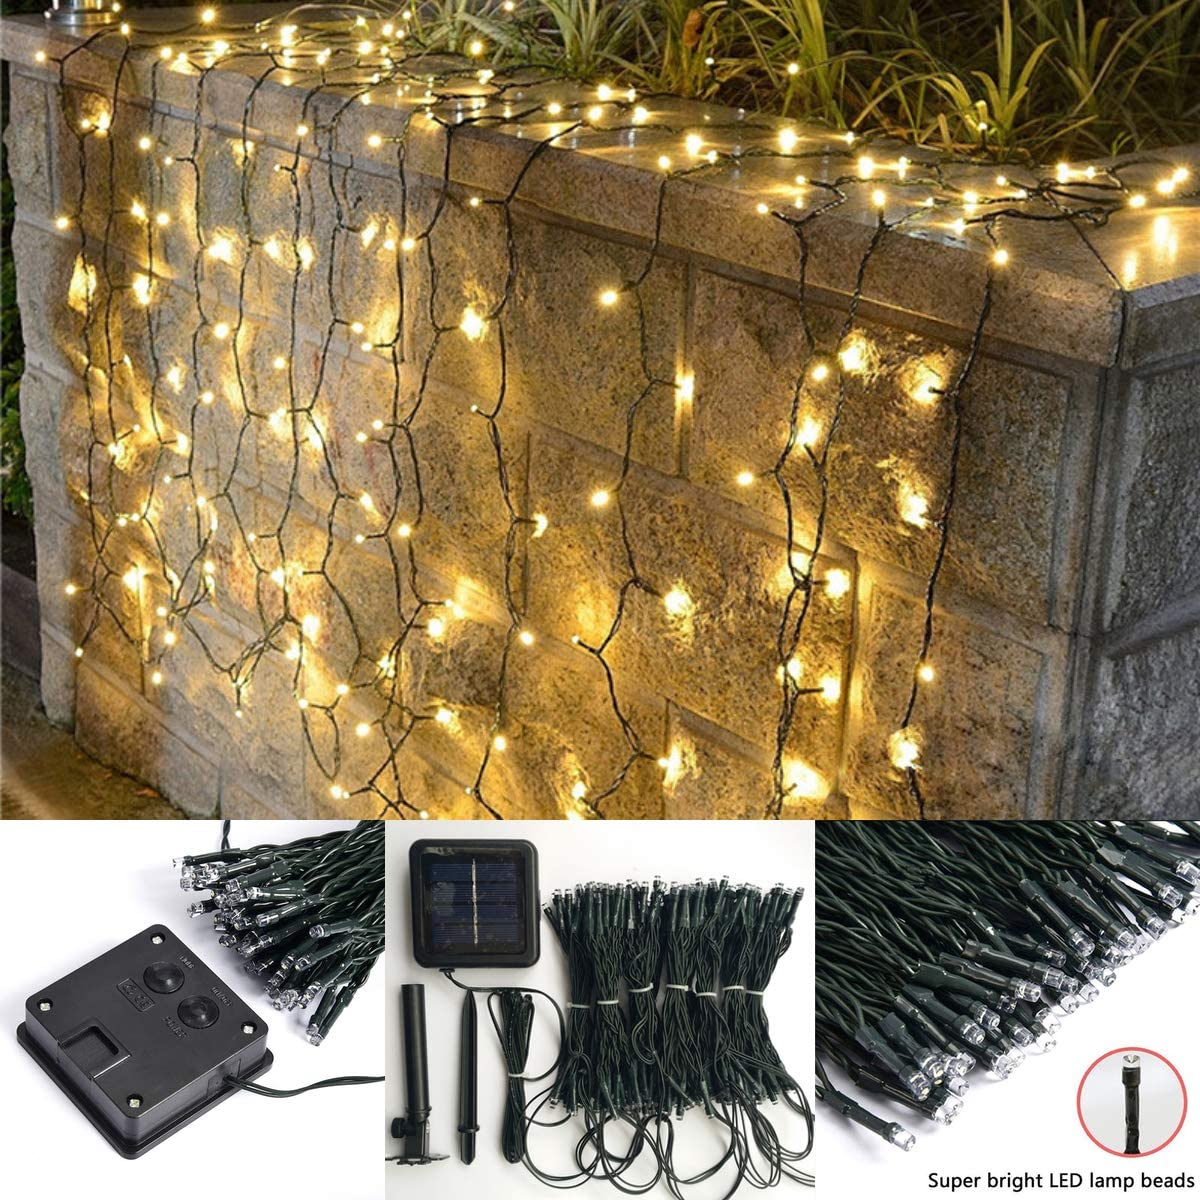 echosari Solar Outdoor Curtain Lights 13 3.3ft 200 LED 8 Modes Solar Powered Fence Backdrop LED String Lights for Garden, Patio, Home, Wedding, Party Outdoor Wall Decoration Warm White